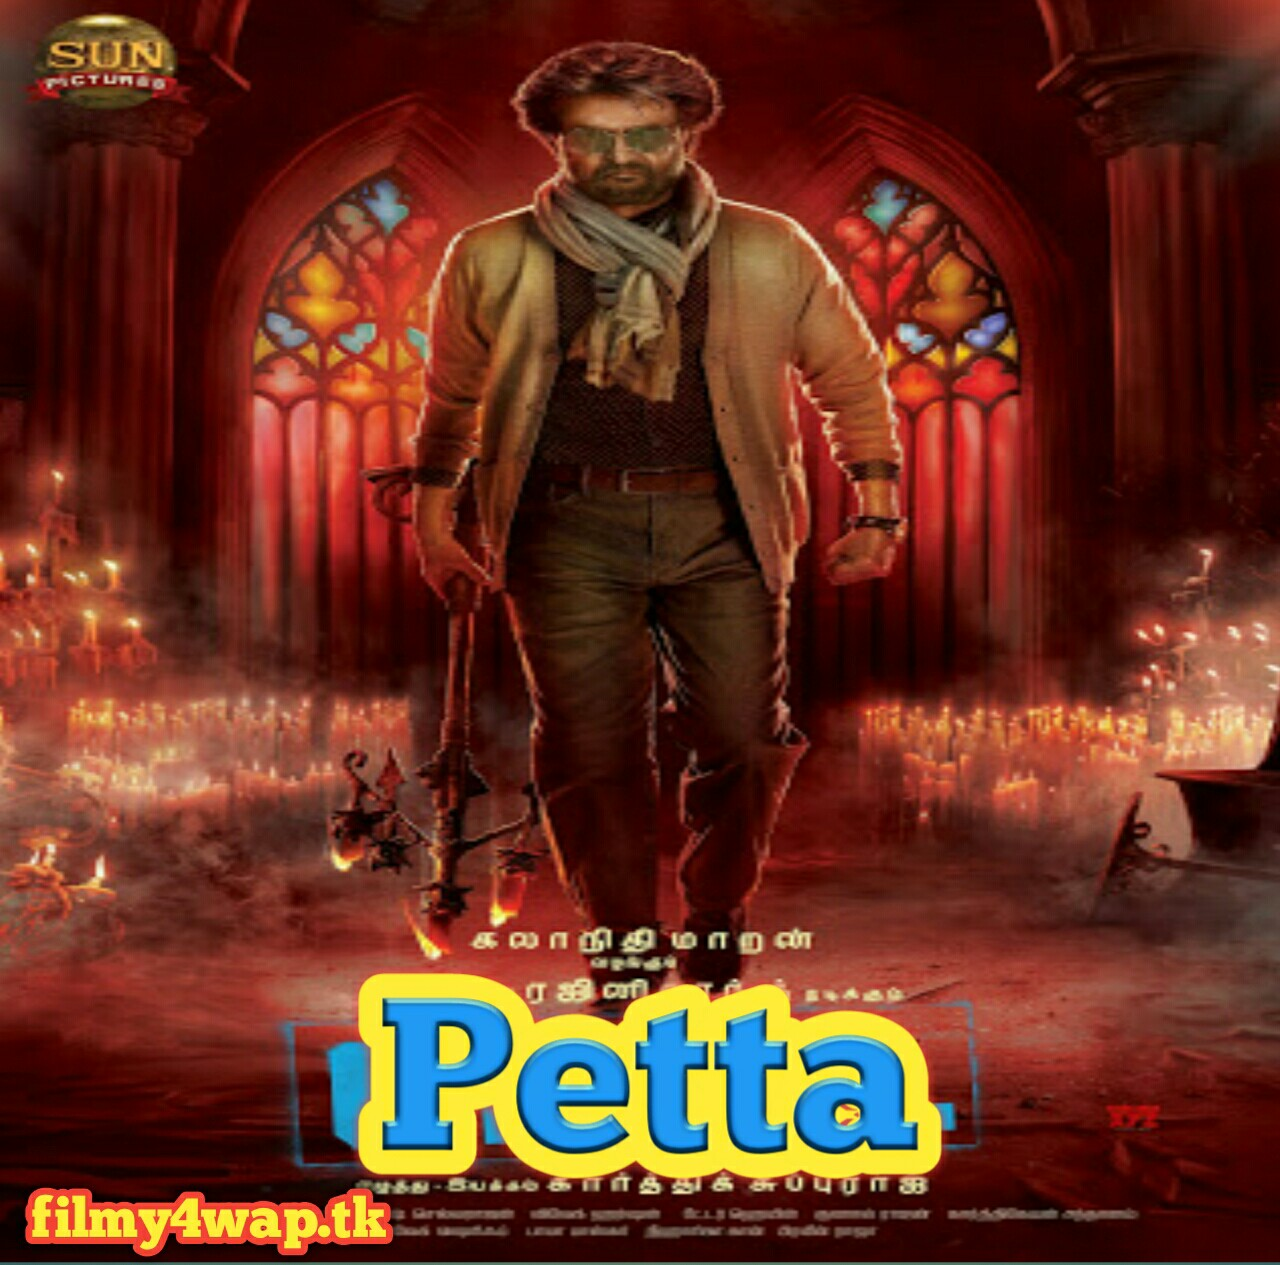 Petta full movie 480p 720p HDRip Filmywap